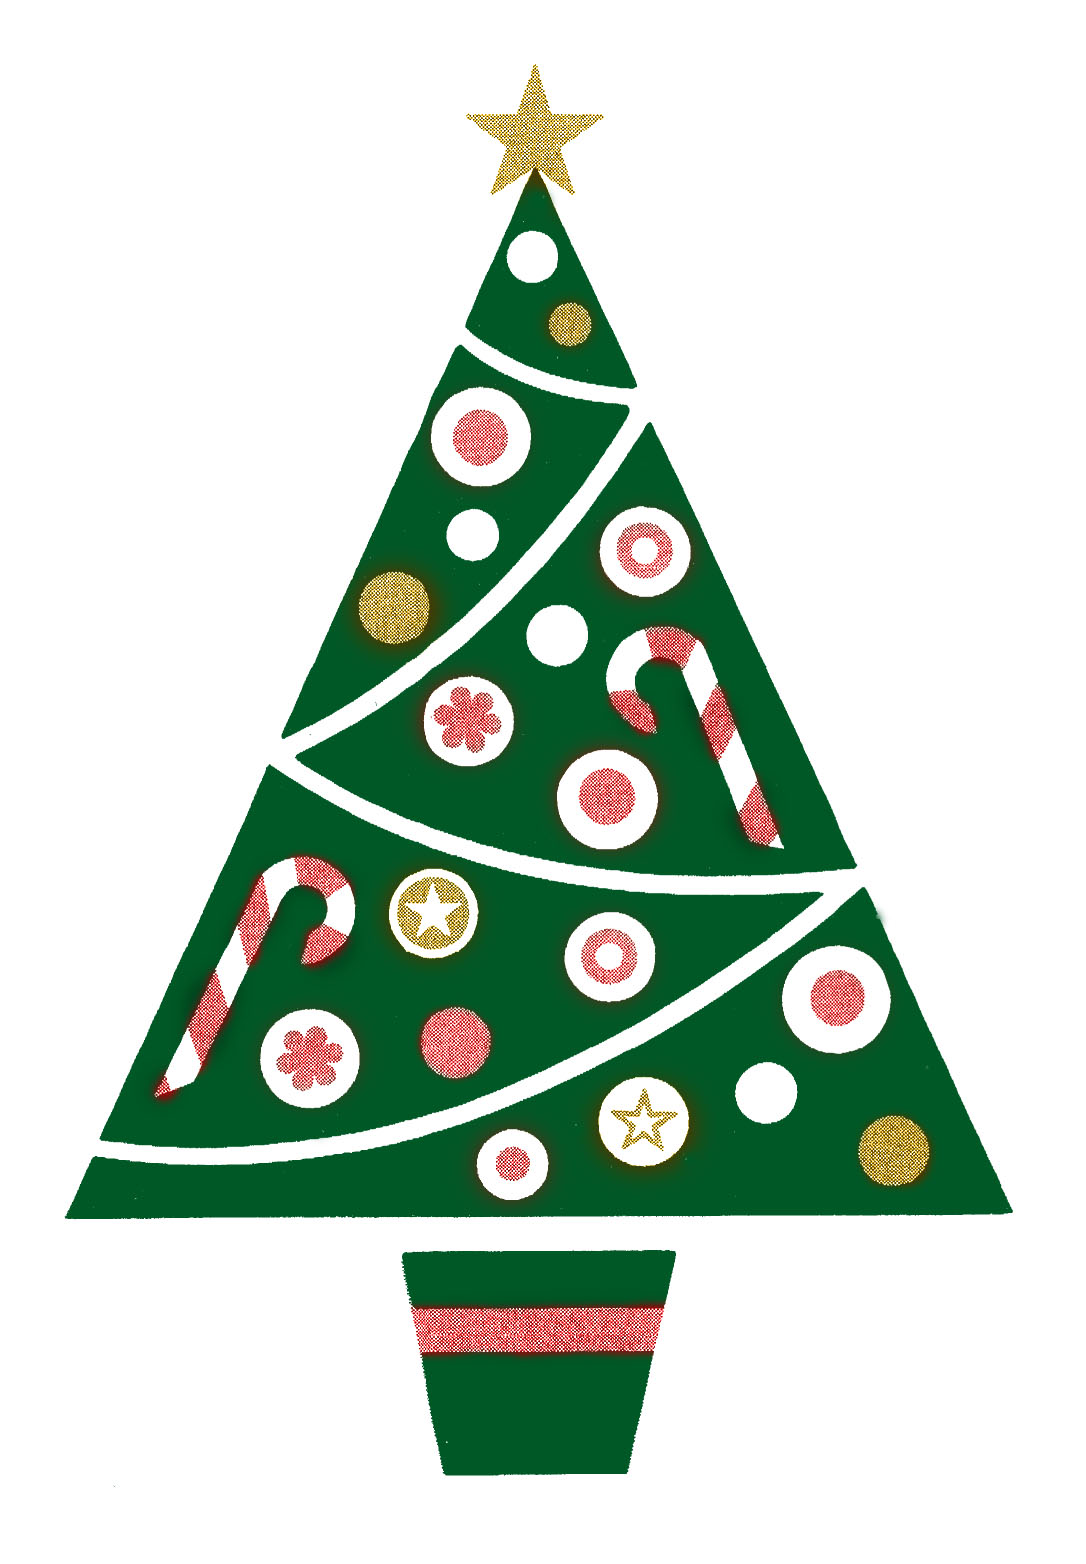 Retro Clip Art - Fun and Funky Christmas Tree - The ...